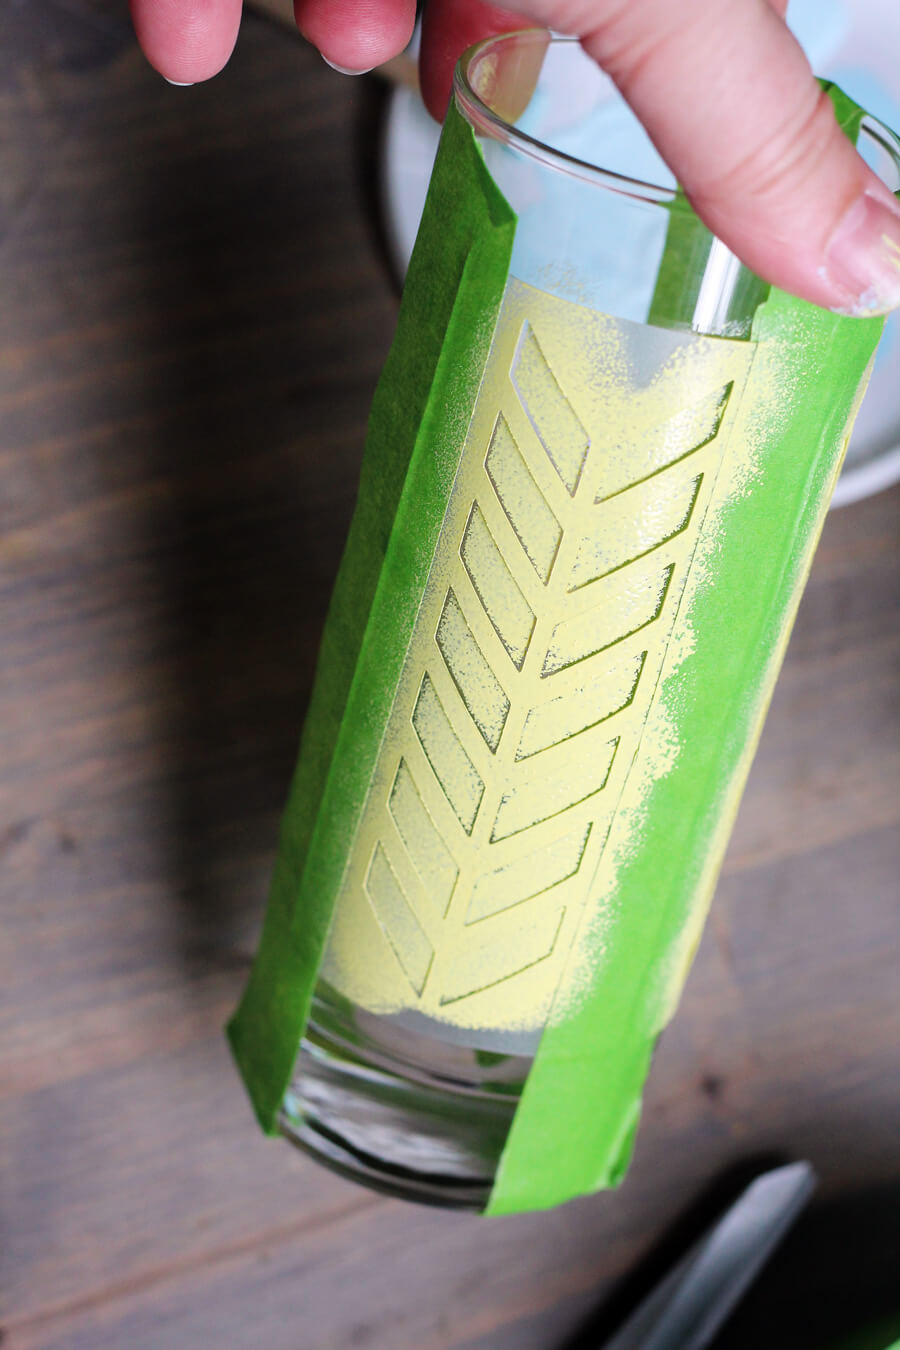 a picture of a high ball cocktail glass with stencil taped to it with yellow paint